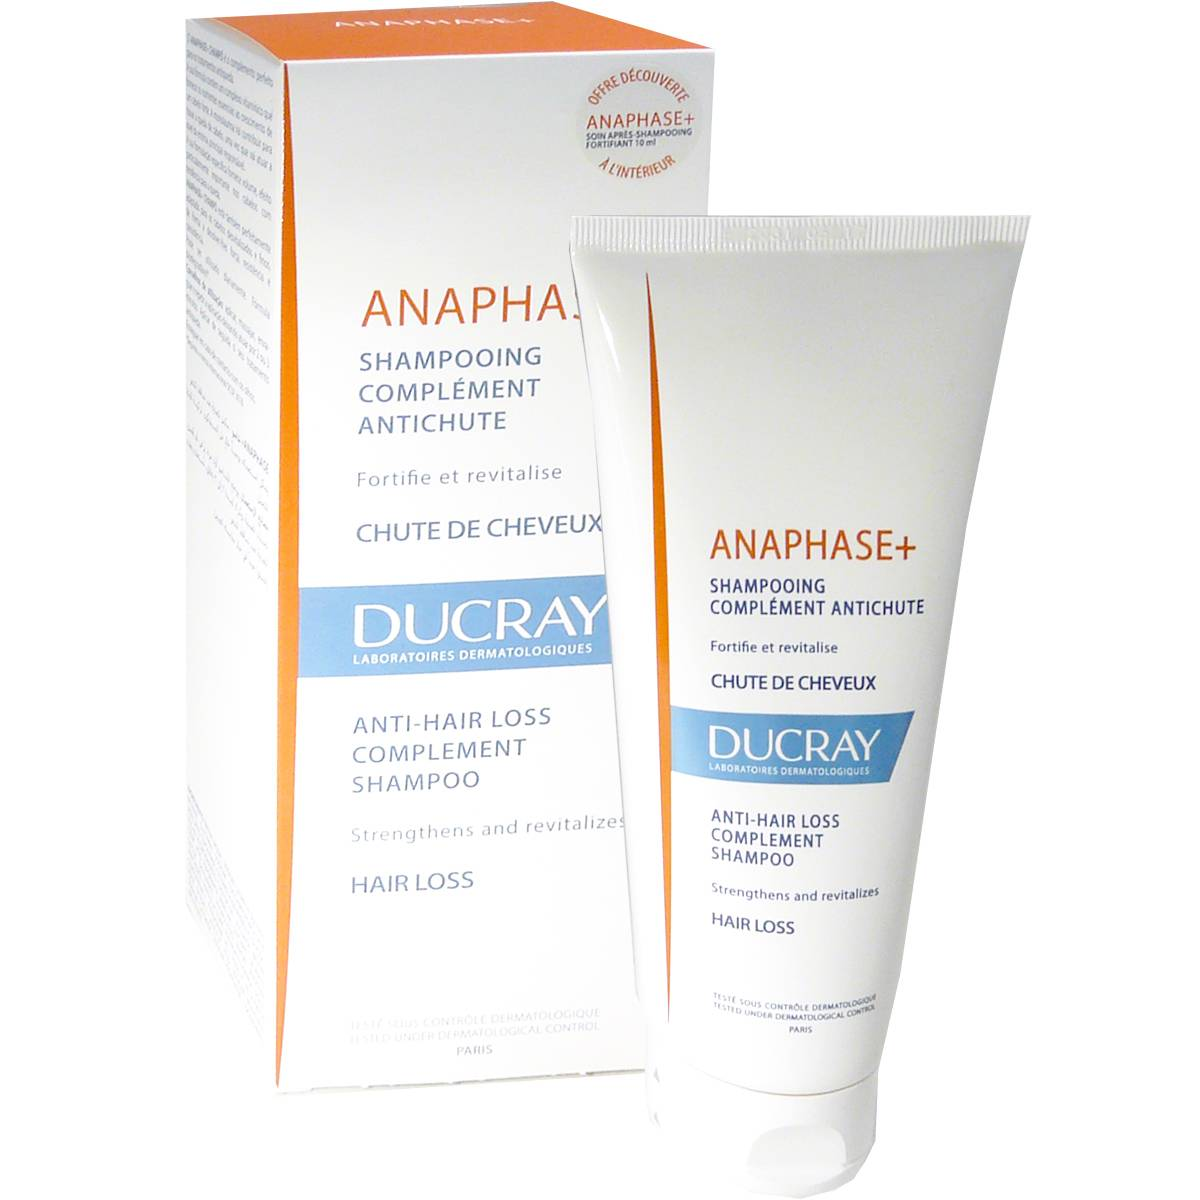 Ducray anaphase+ shampooing complement anti-chut 200ml